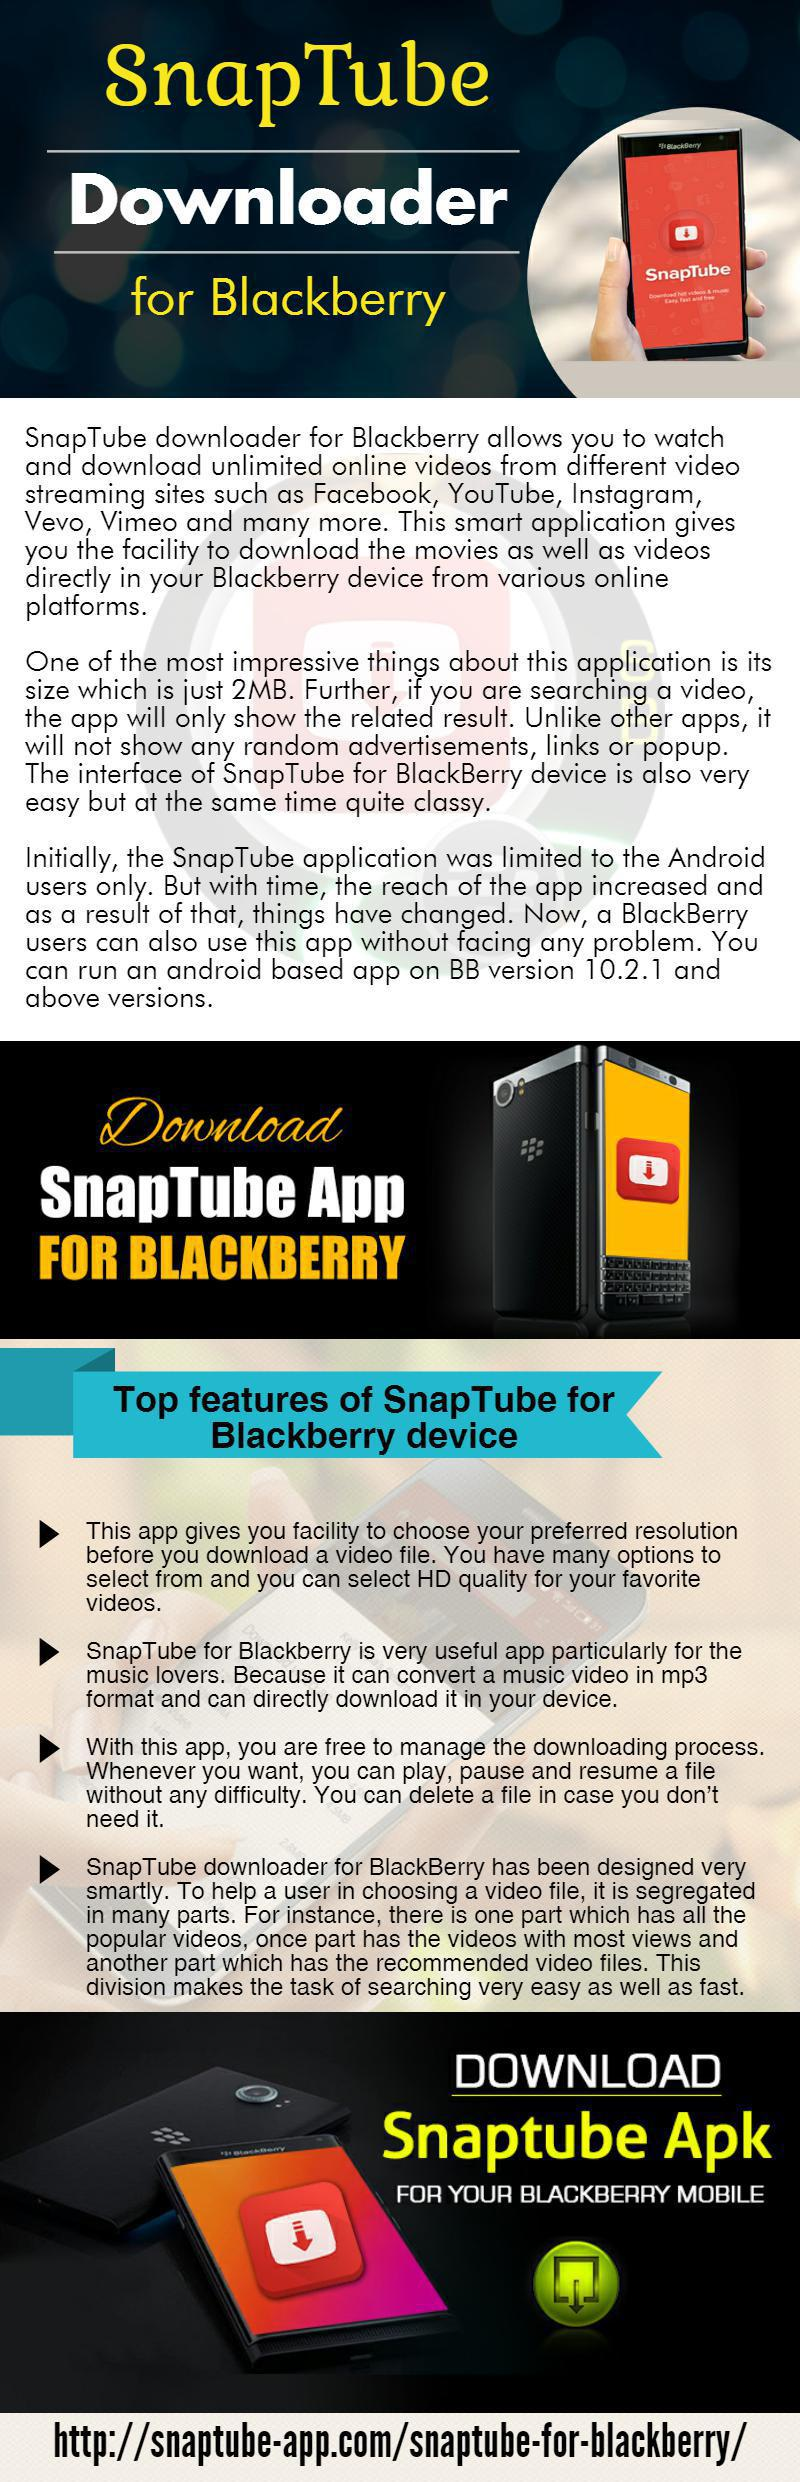 SnapTube downloader for Blackberry allows you to watch and